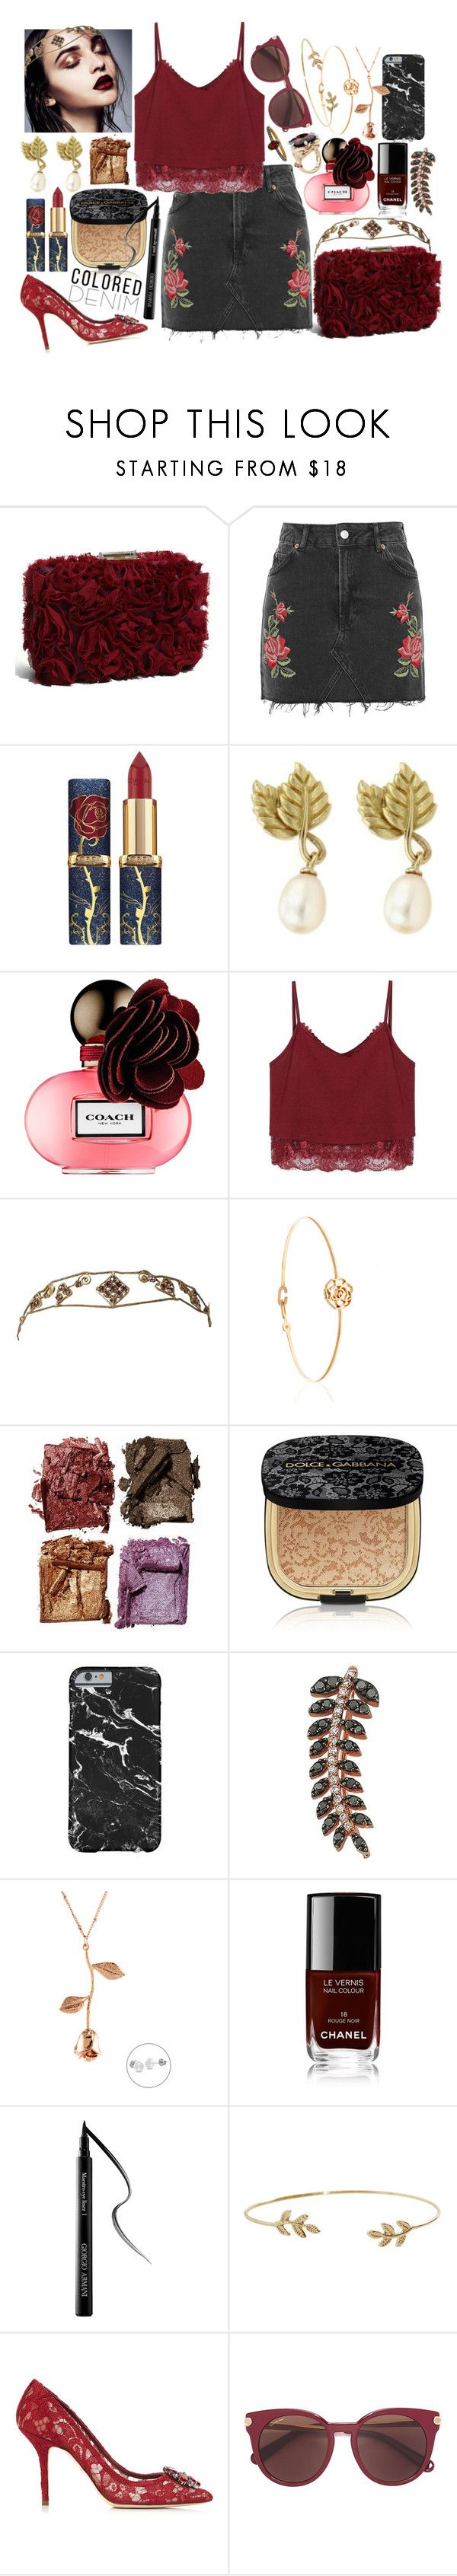 """John Wayne - Lady Gaga"" by leo8august ❤ liked on Polyvore featuring Franchi, Tiffany & Co., Coach, Illamasqua, Dolce&Gabbana, Bee Goddess, Chanel, Giorgio Armani, Humble Chic and Salvatore Ferragamo"